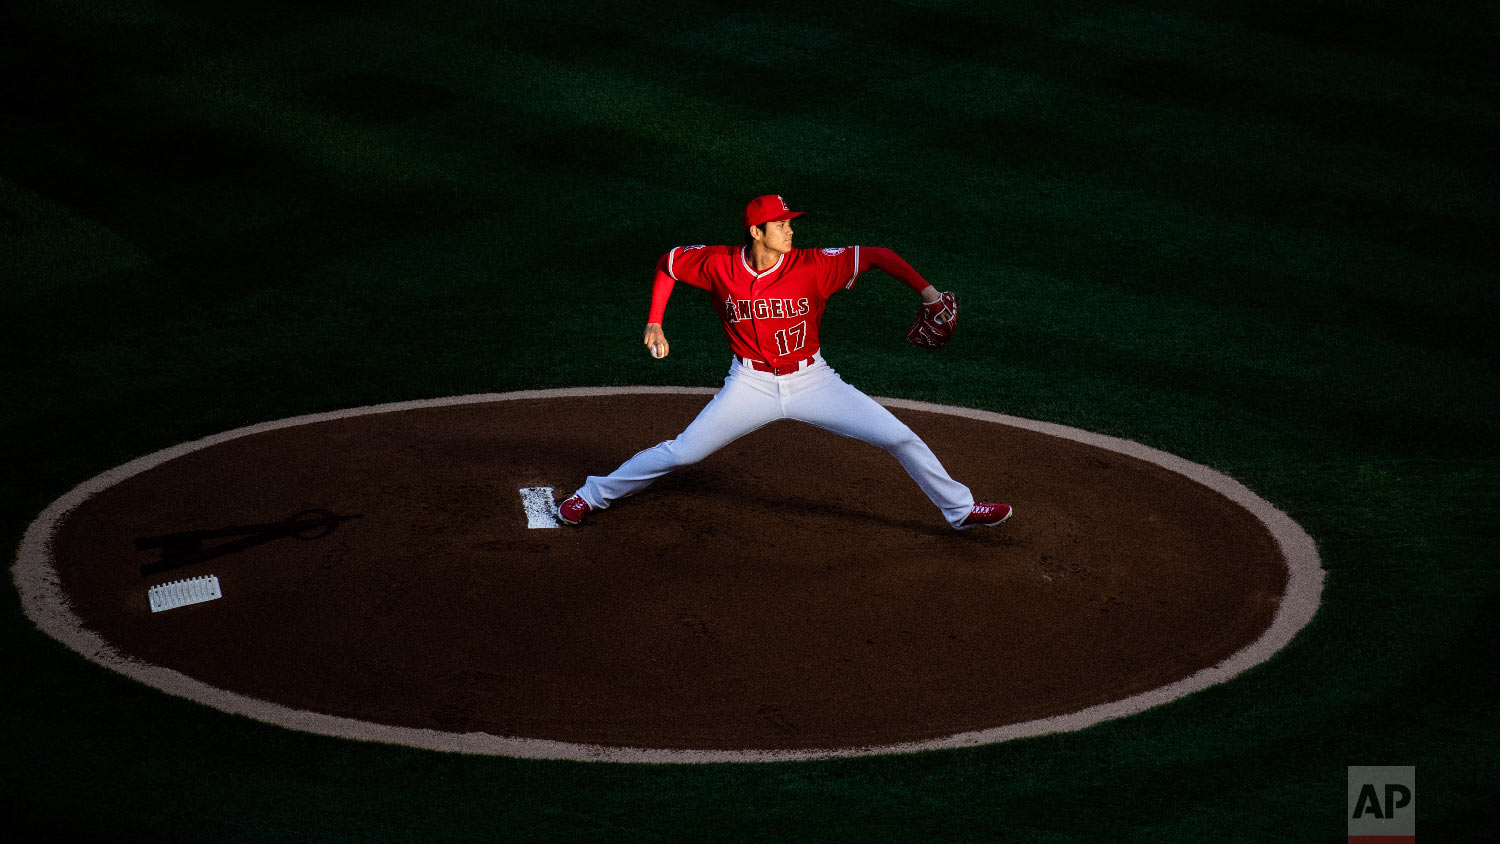 Los Angeles Angels starting pitcher Shohei Ohtani winds up during the first inning of the team's baseball game against the Kansas City Royals in Anaheim, Calif., on June 6, 2018. (AP Photo/Kyusung Gong)